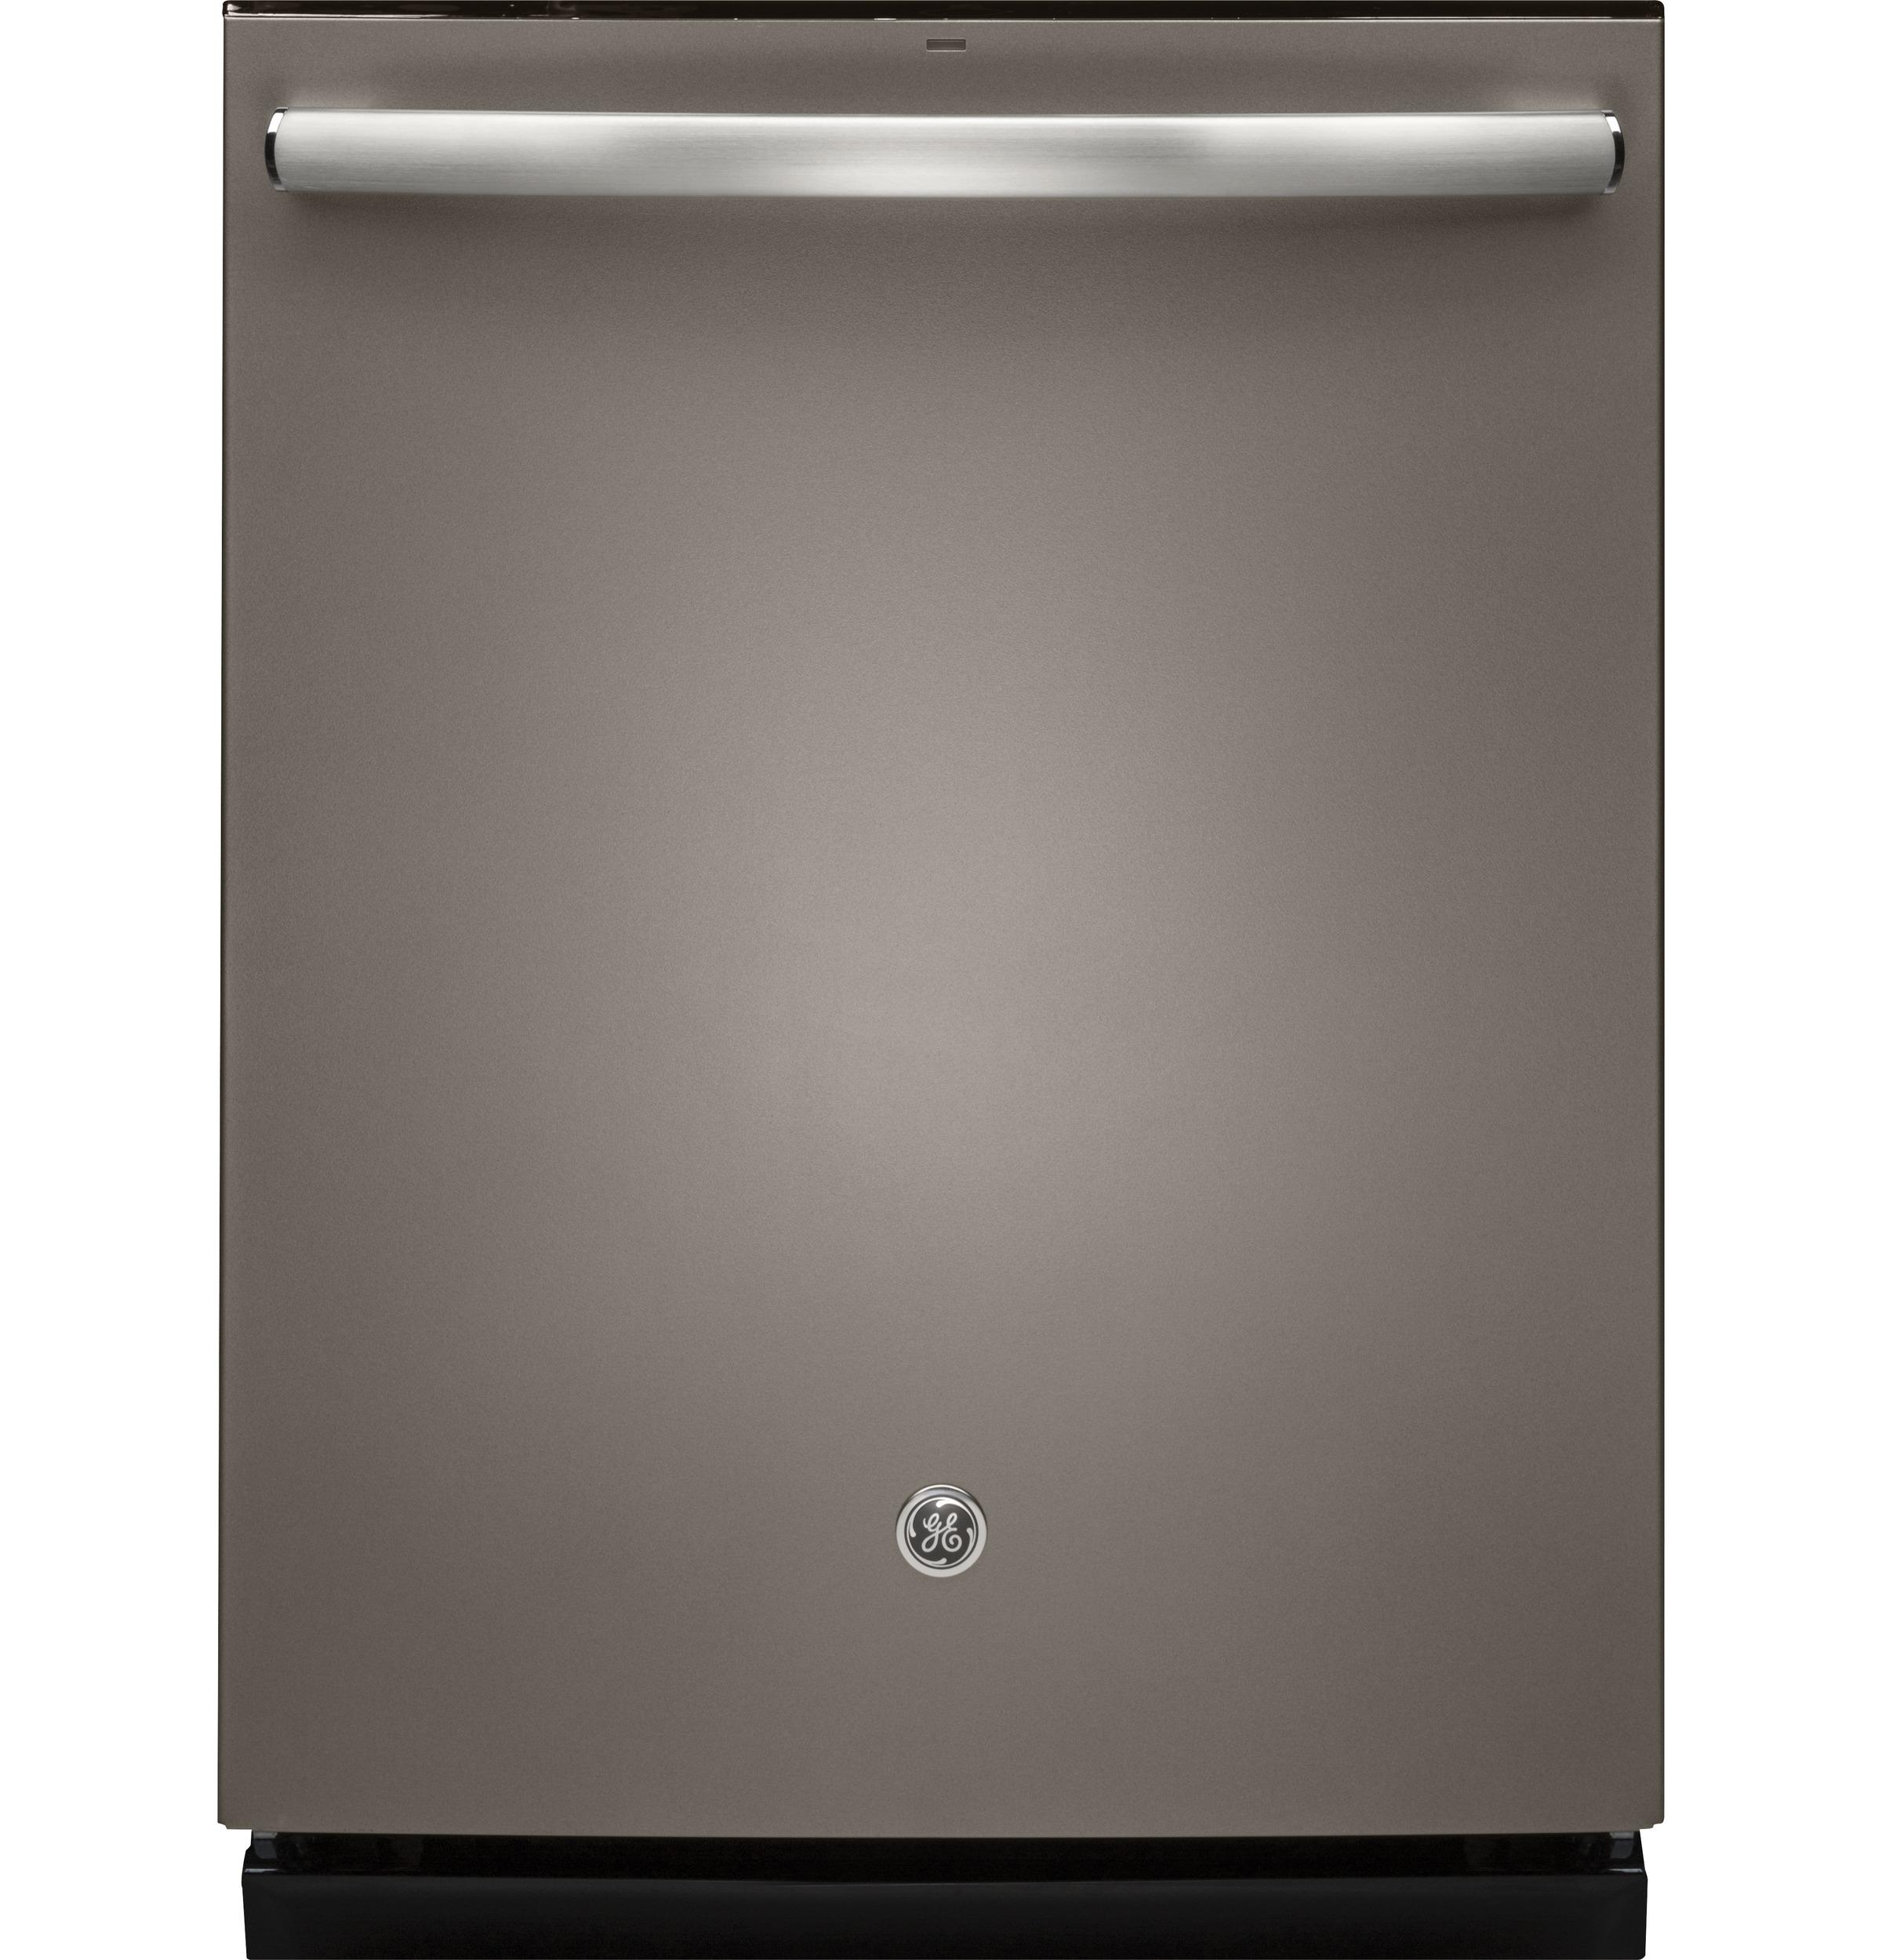 Ge Appliances Ge Stainless Steel Interior Dishwasher With Hidden Controls Gdt695smjes